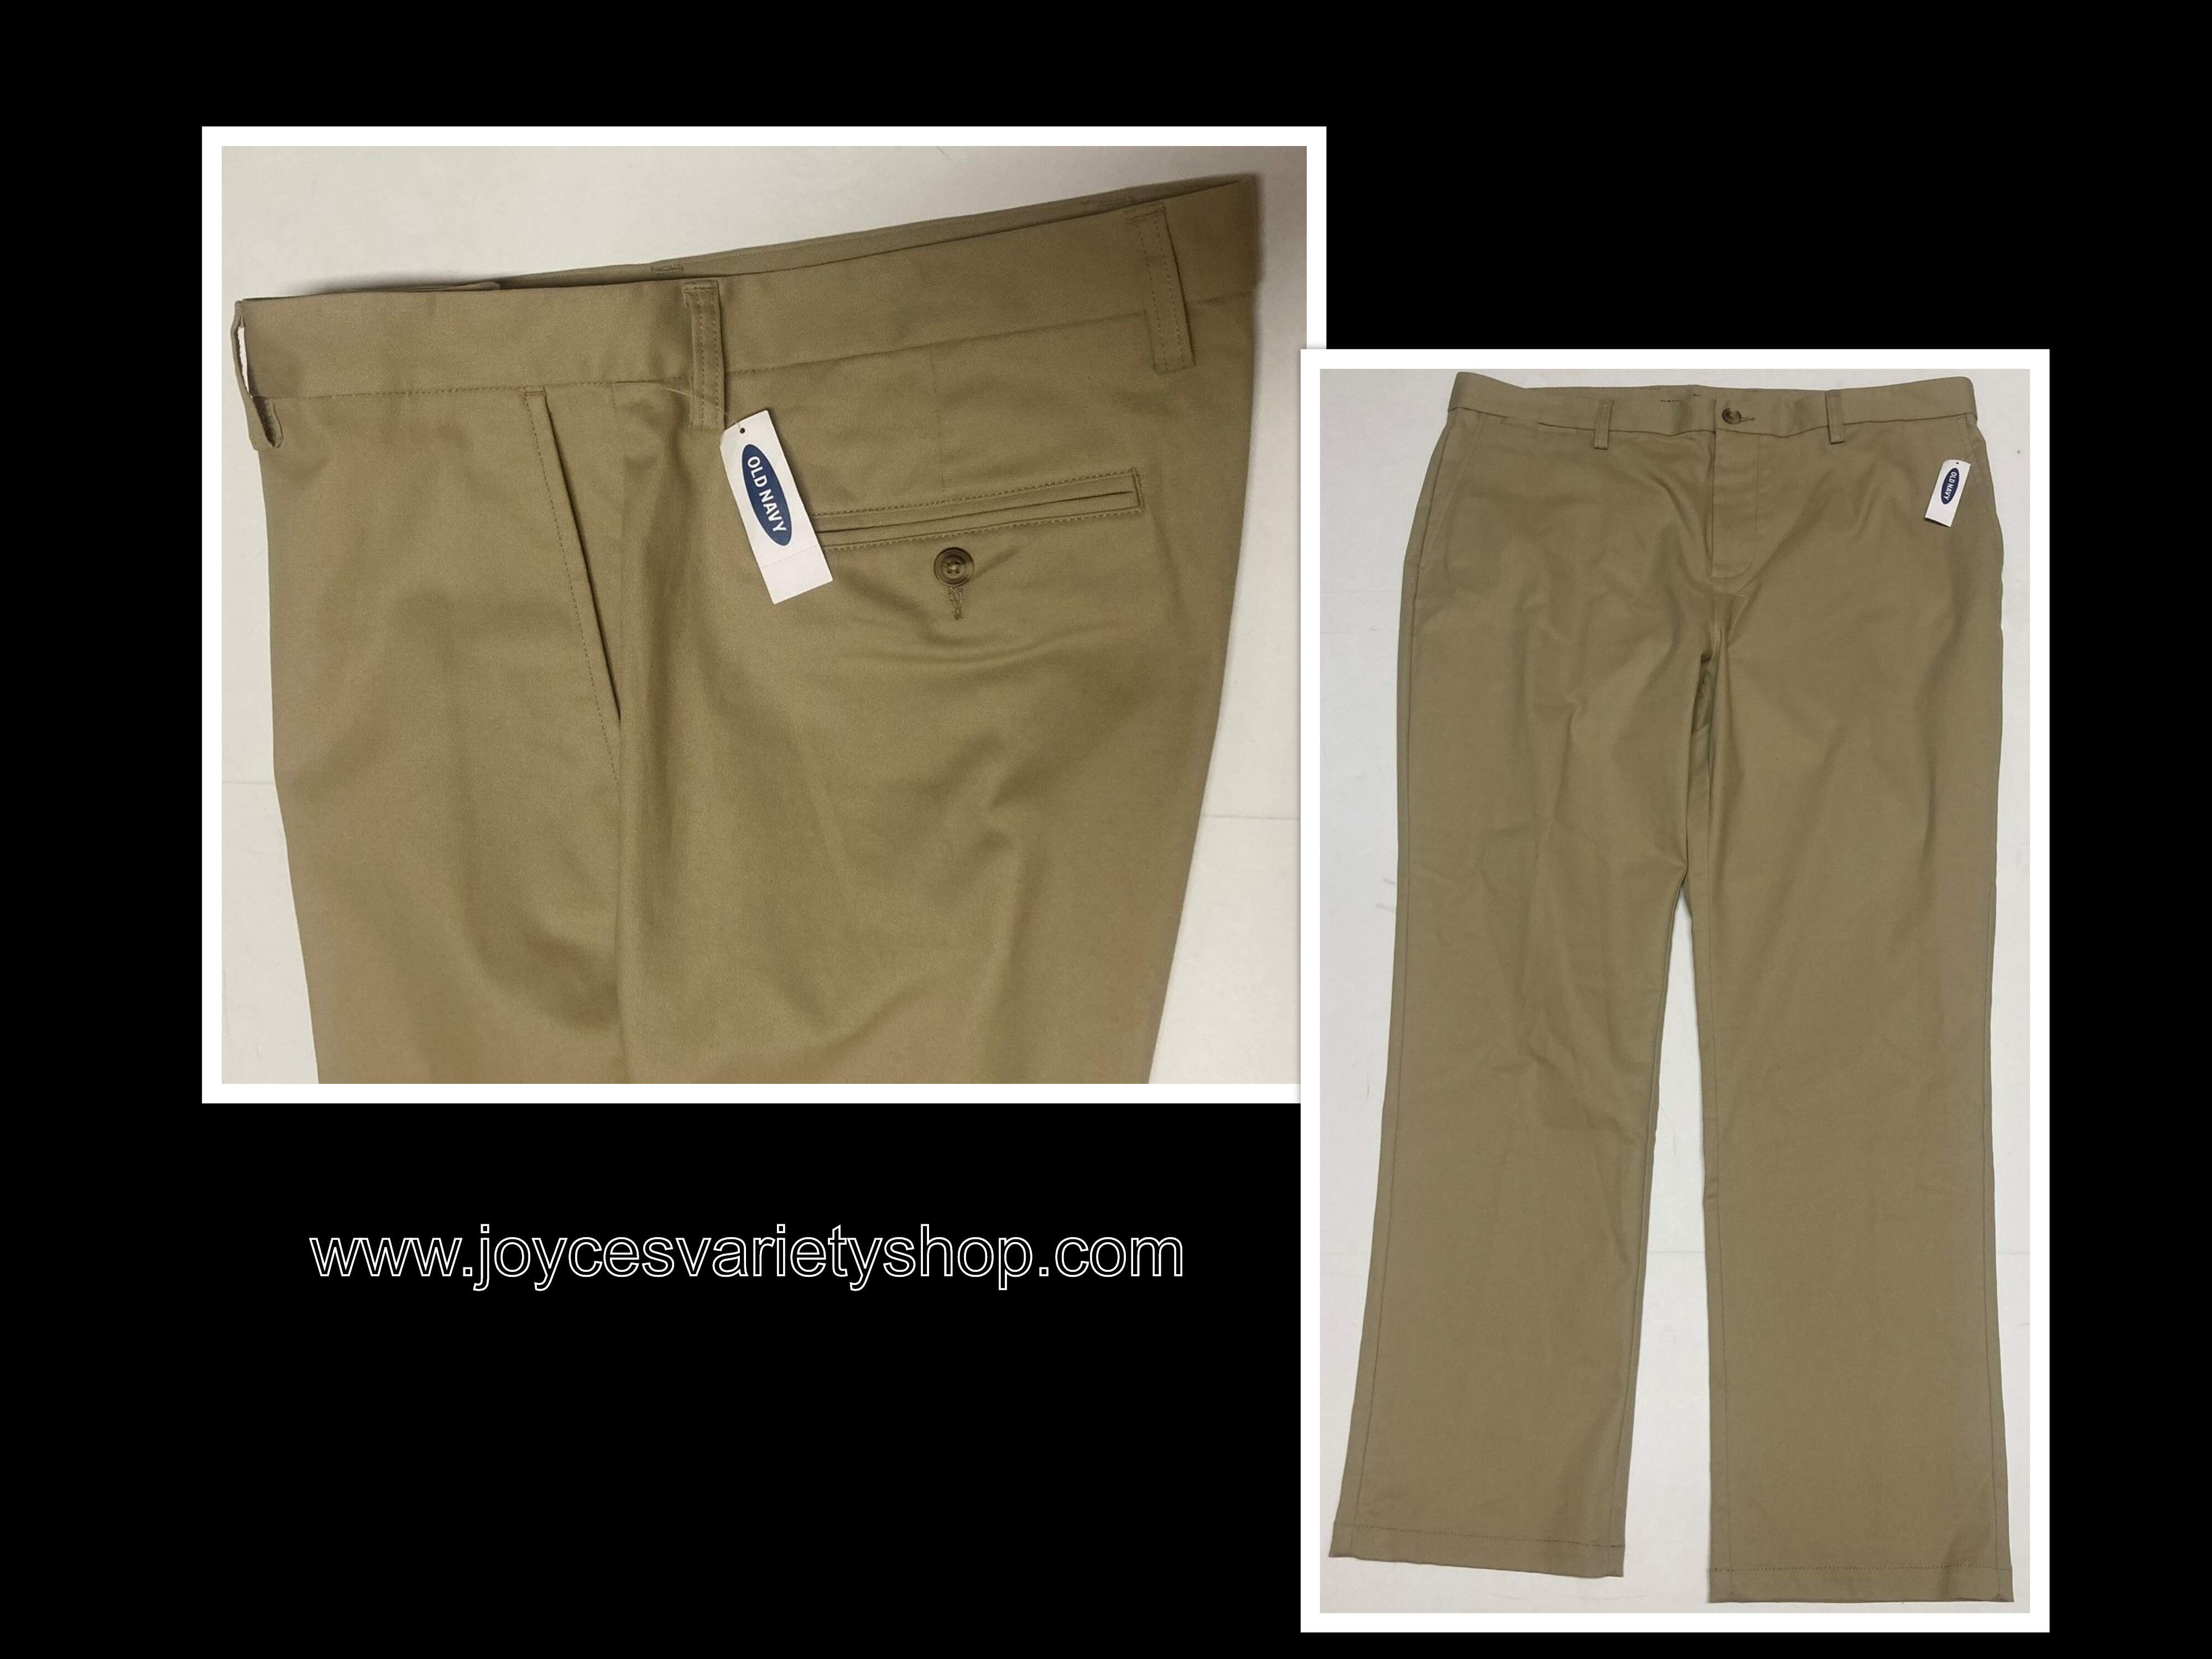 Old Navy Pants Slacks Men's Sz 40 x 30 Beige No Iron Built in Flex